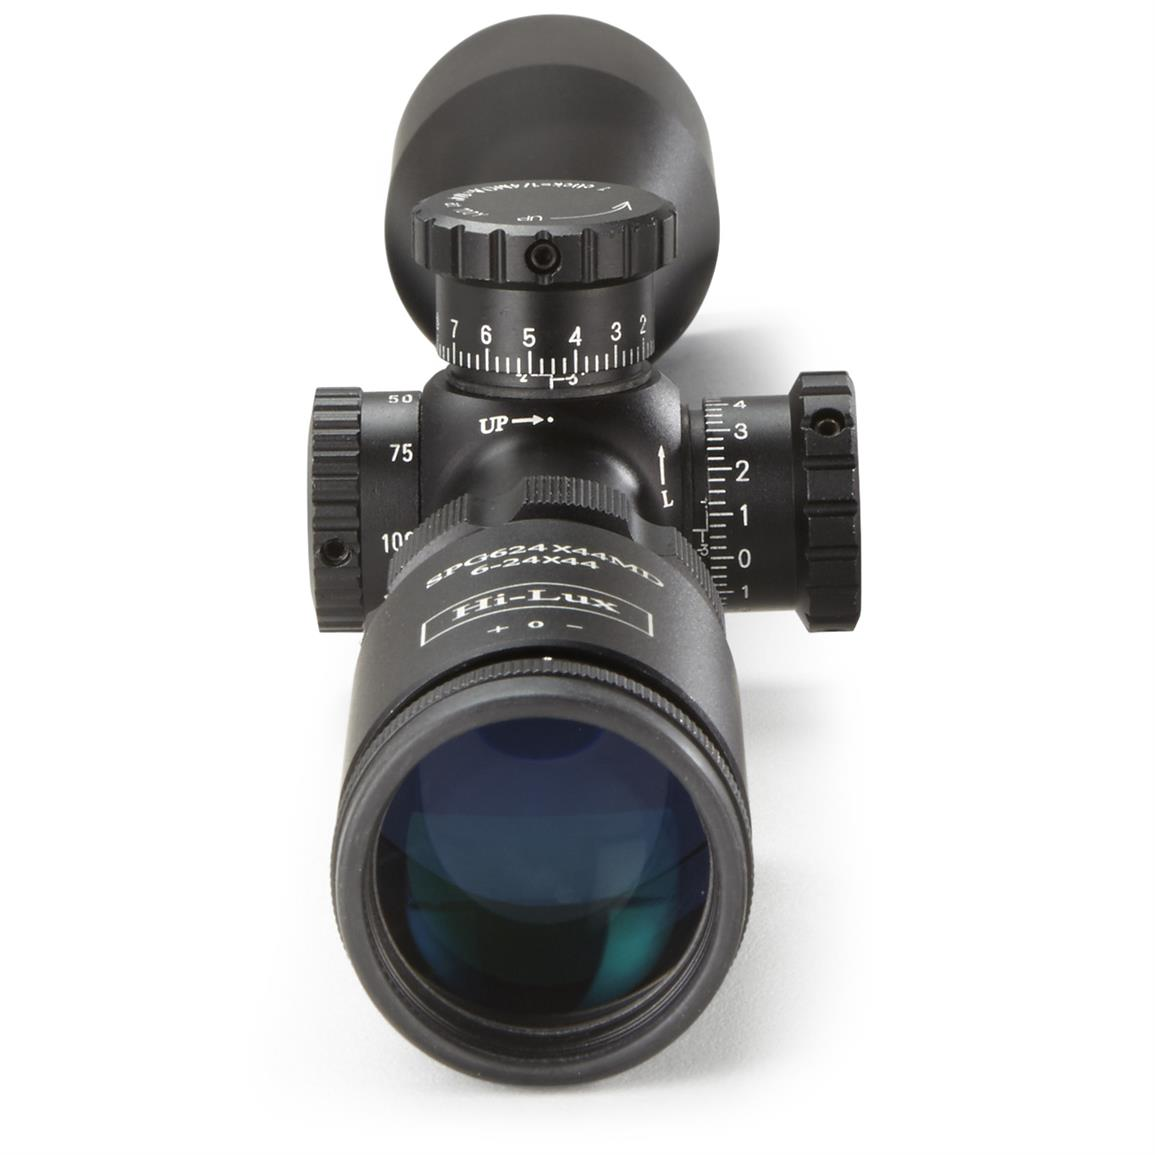 Fully multi-coated optics for total clarity